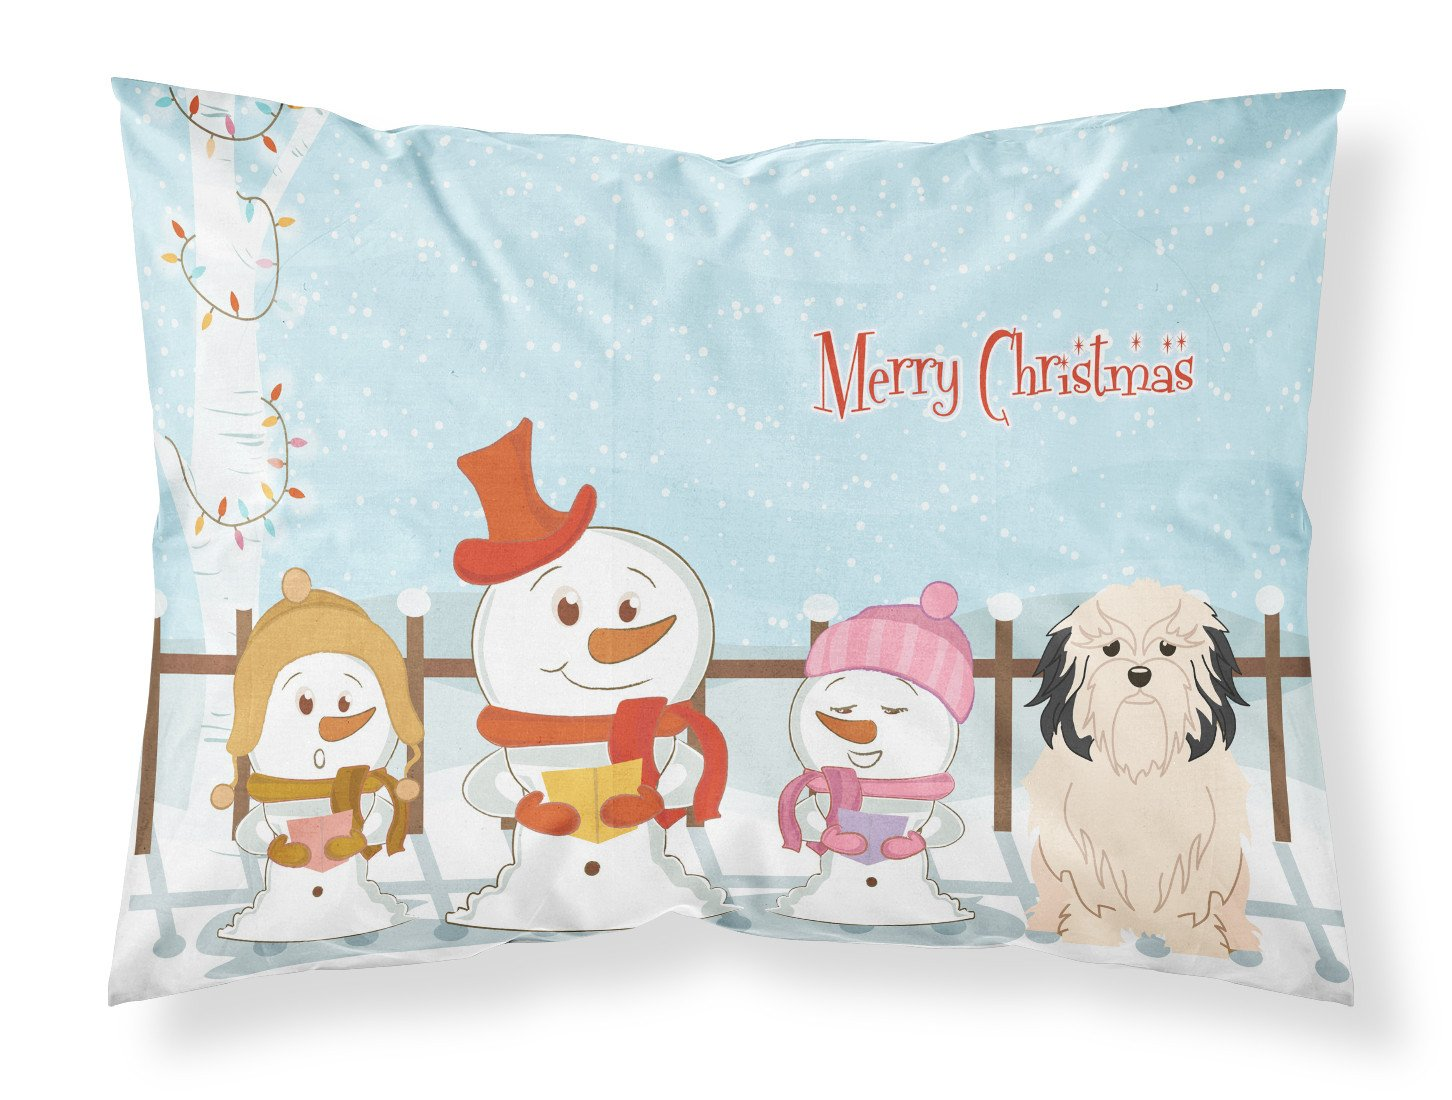 Merry Christmas Carolers Lowchen Fabric Standard Pillowcase BB2350PILLOWCASE by Caroline's Treasures